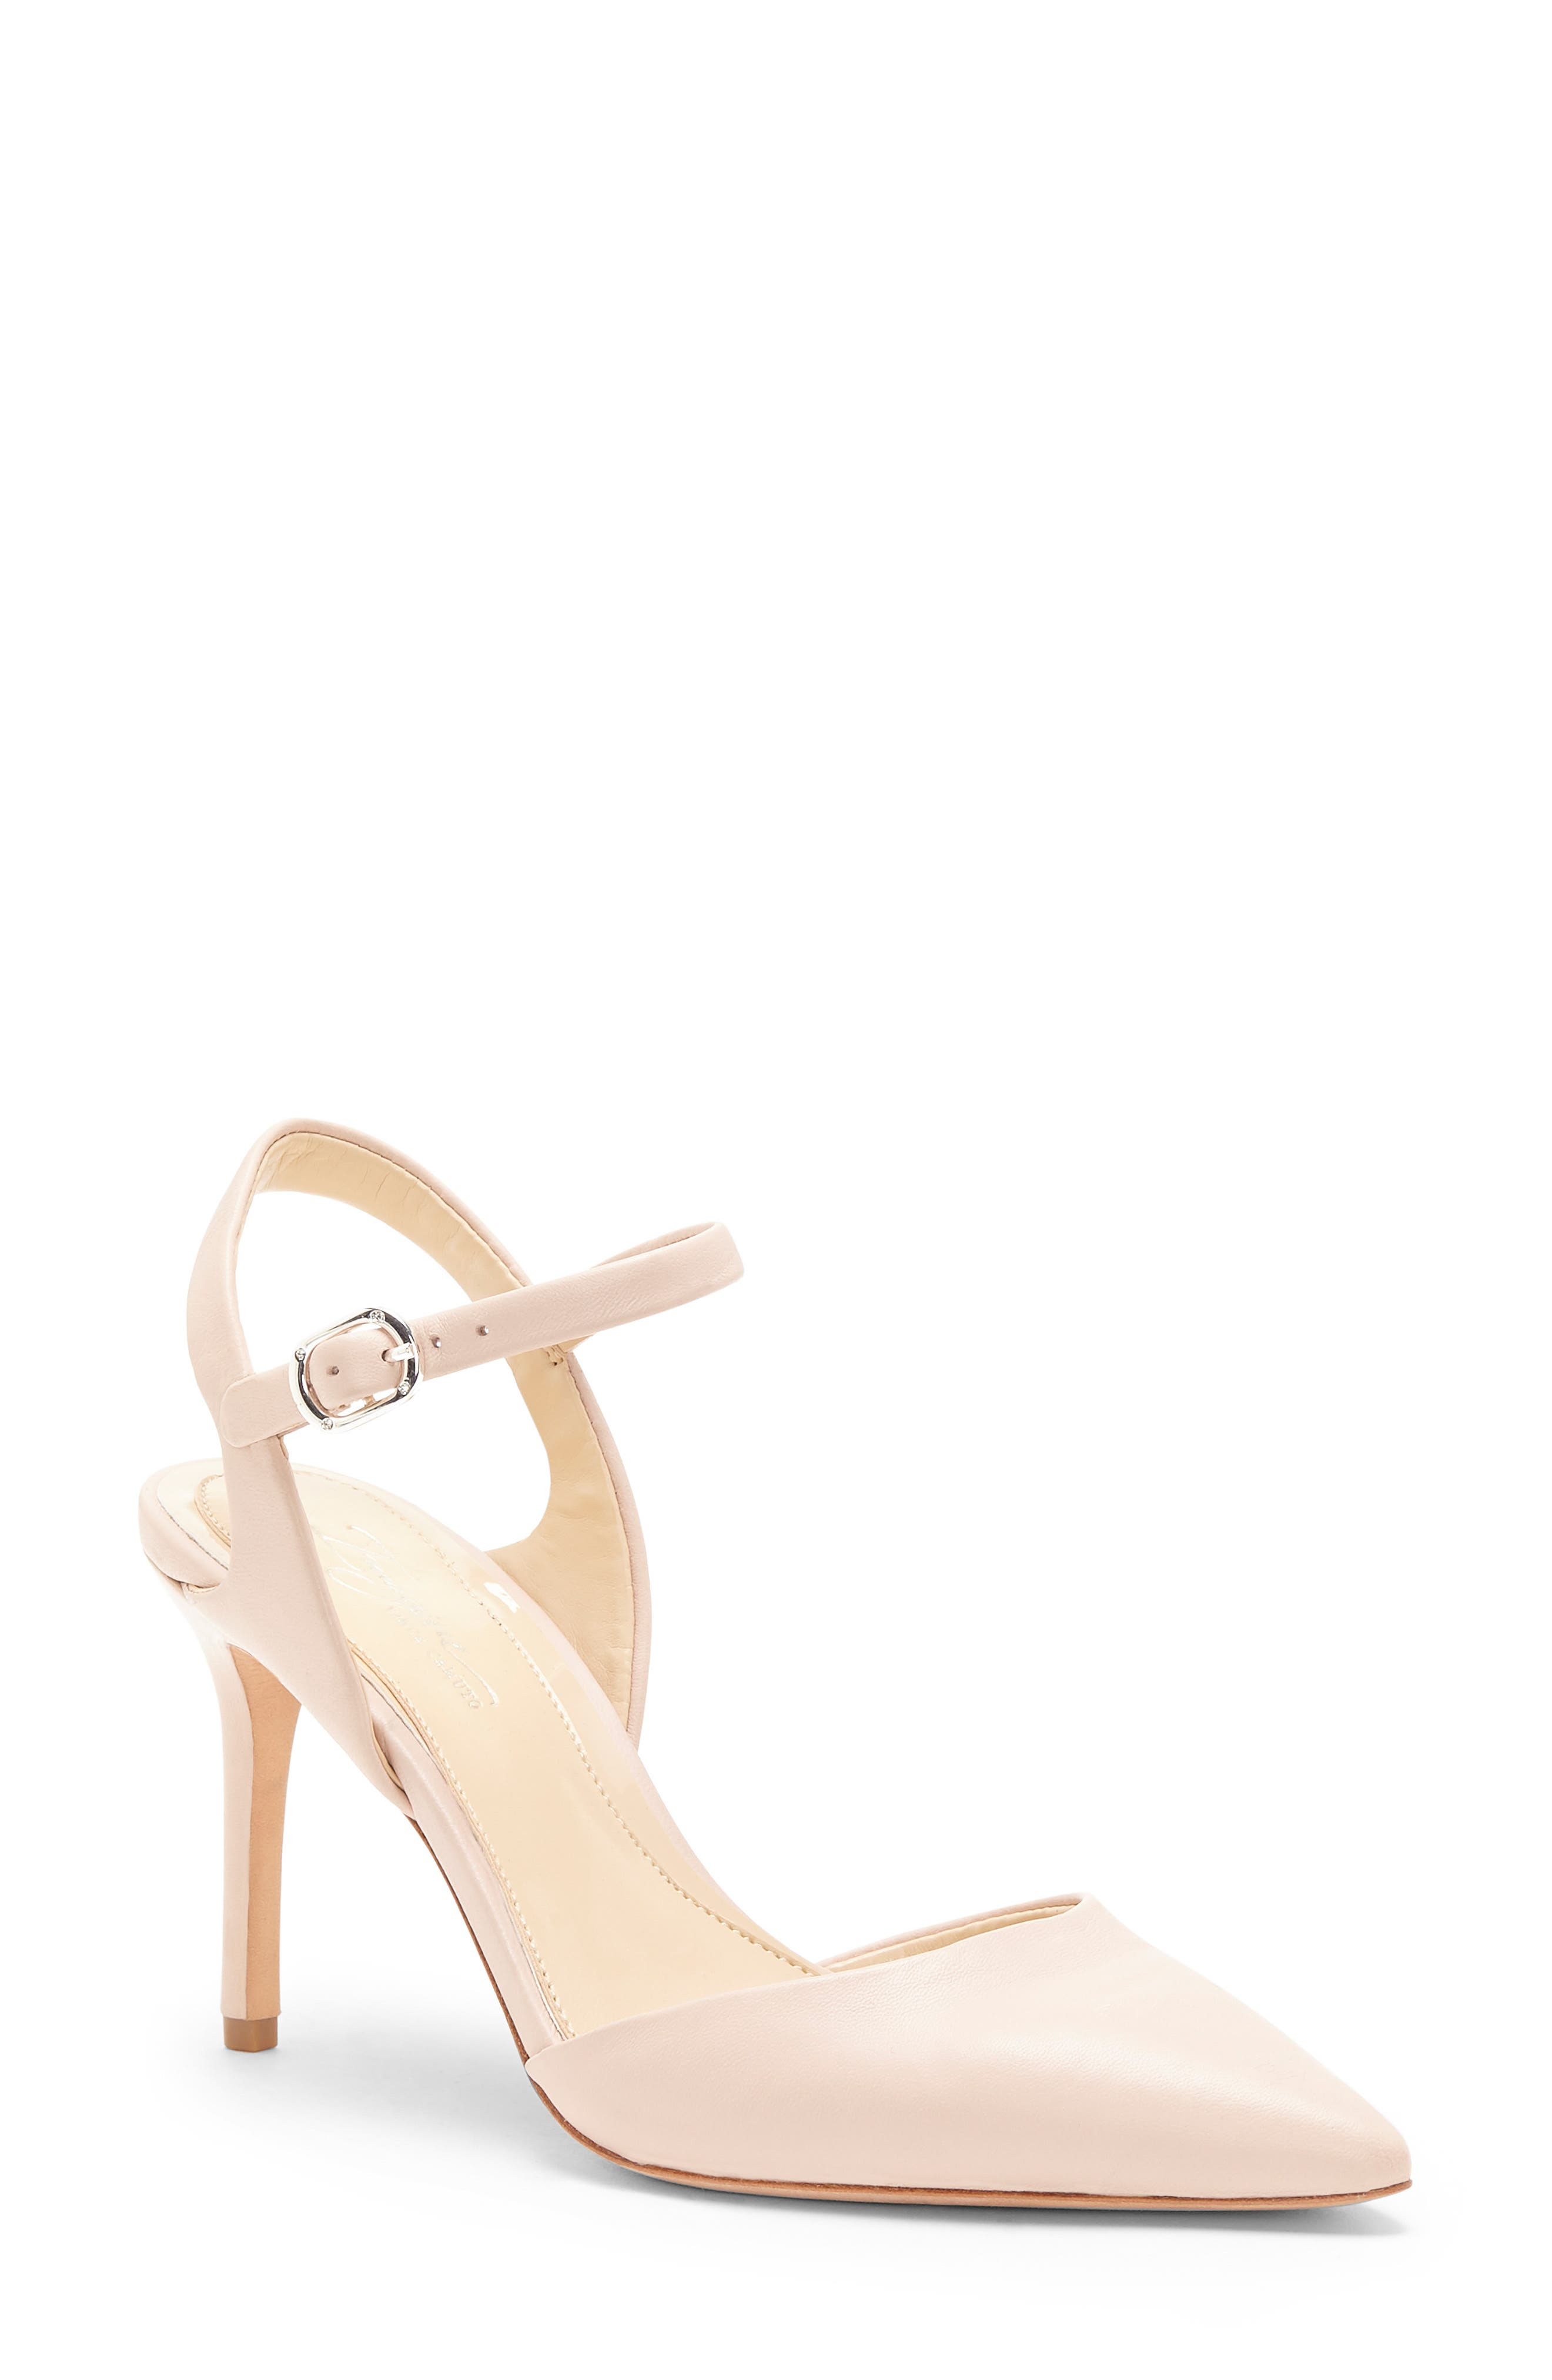 6476e032b6f Imagine By Vince Camuto Glora Pointy Toe Pump- Beige